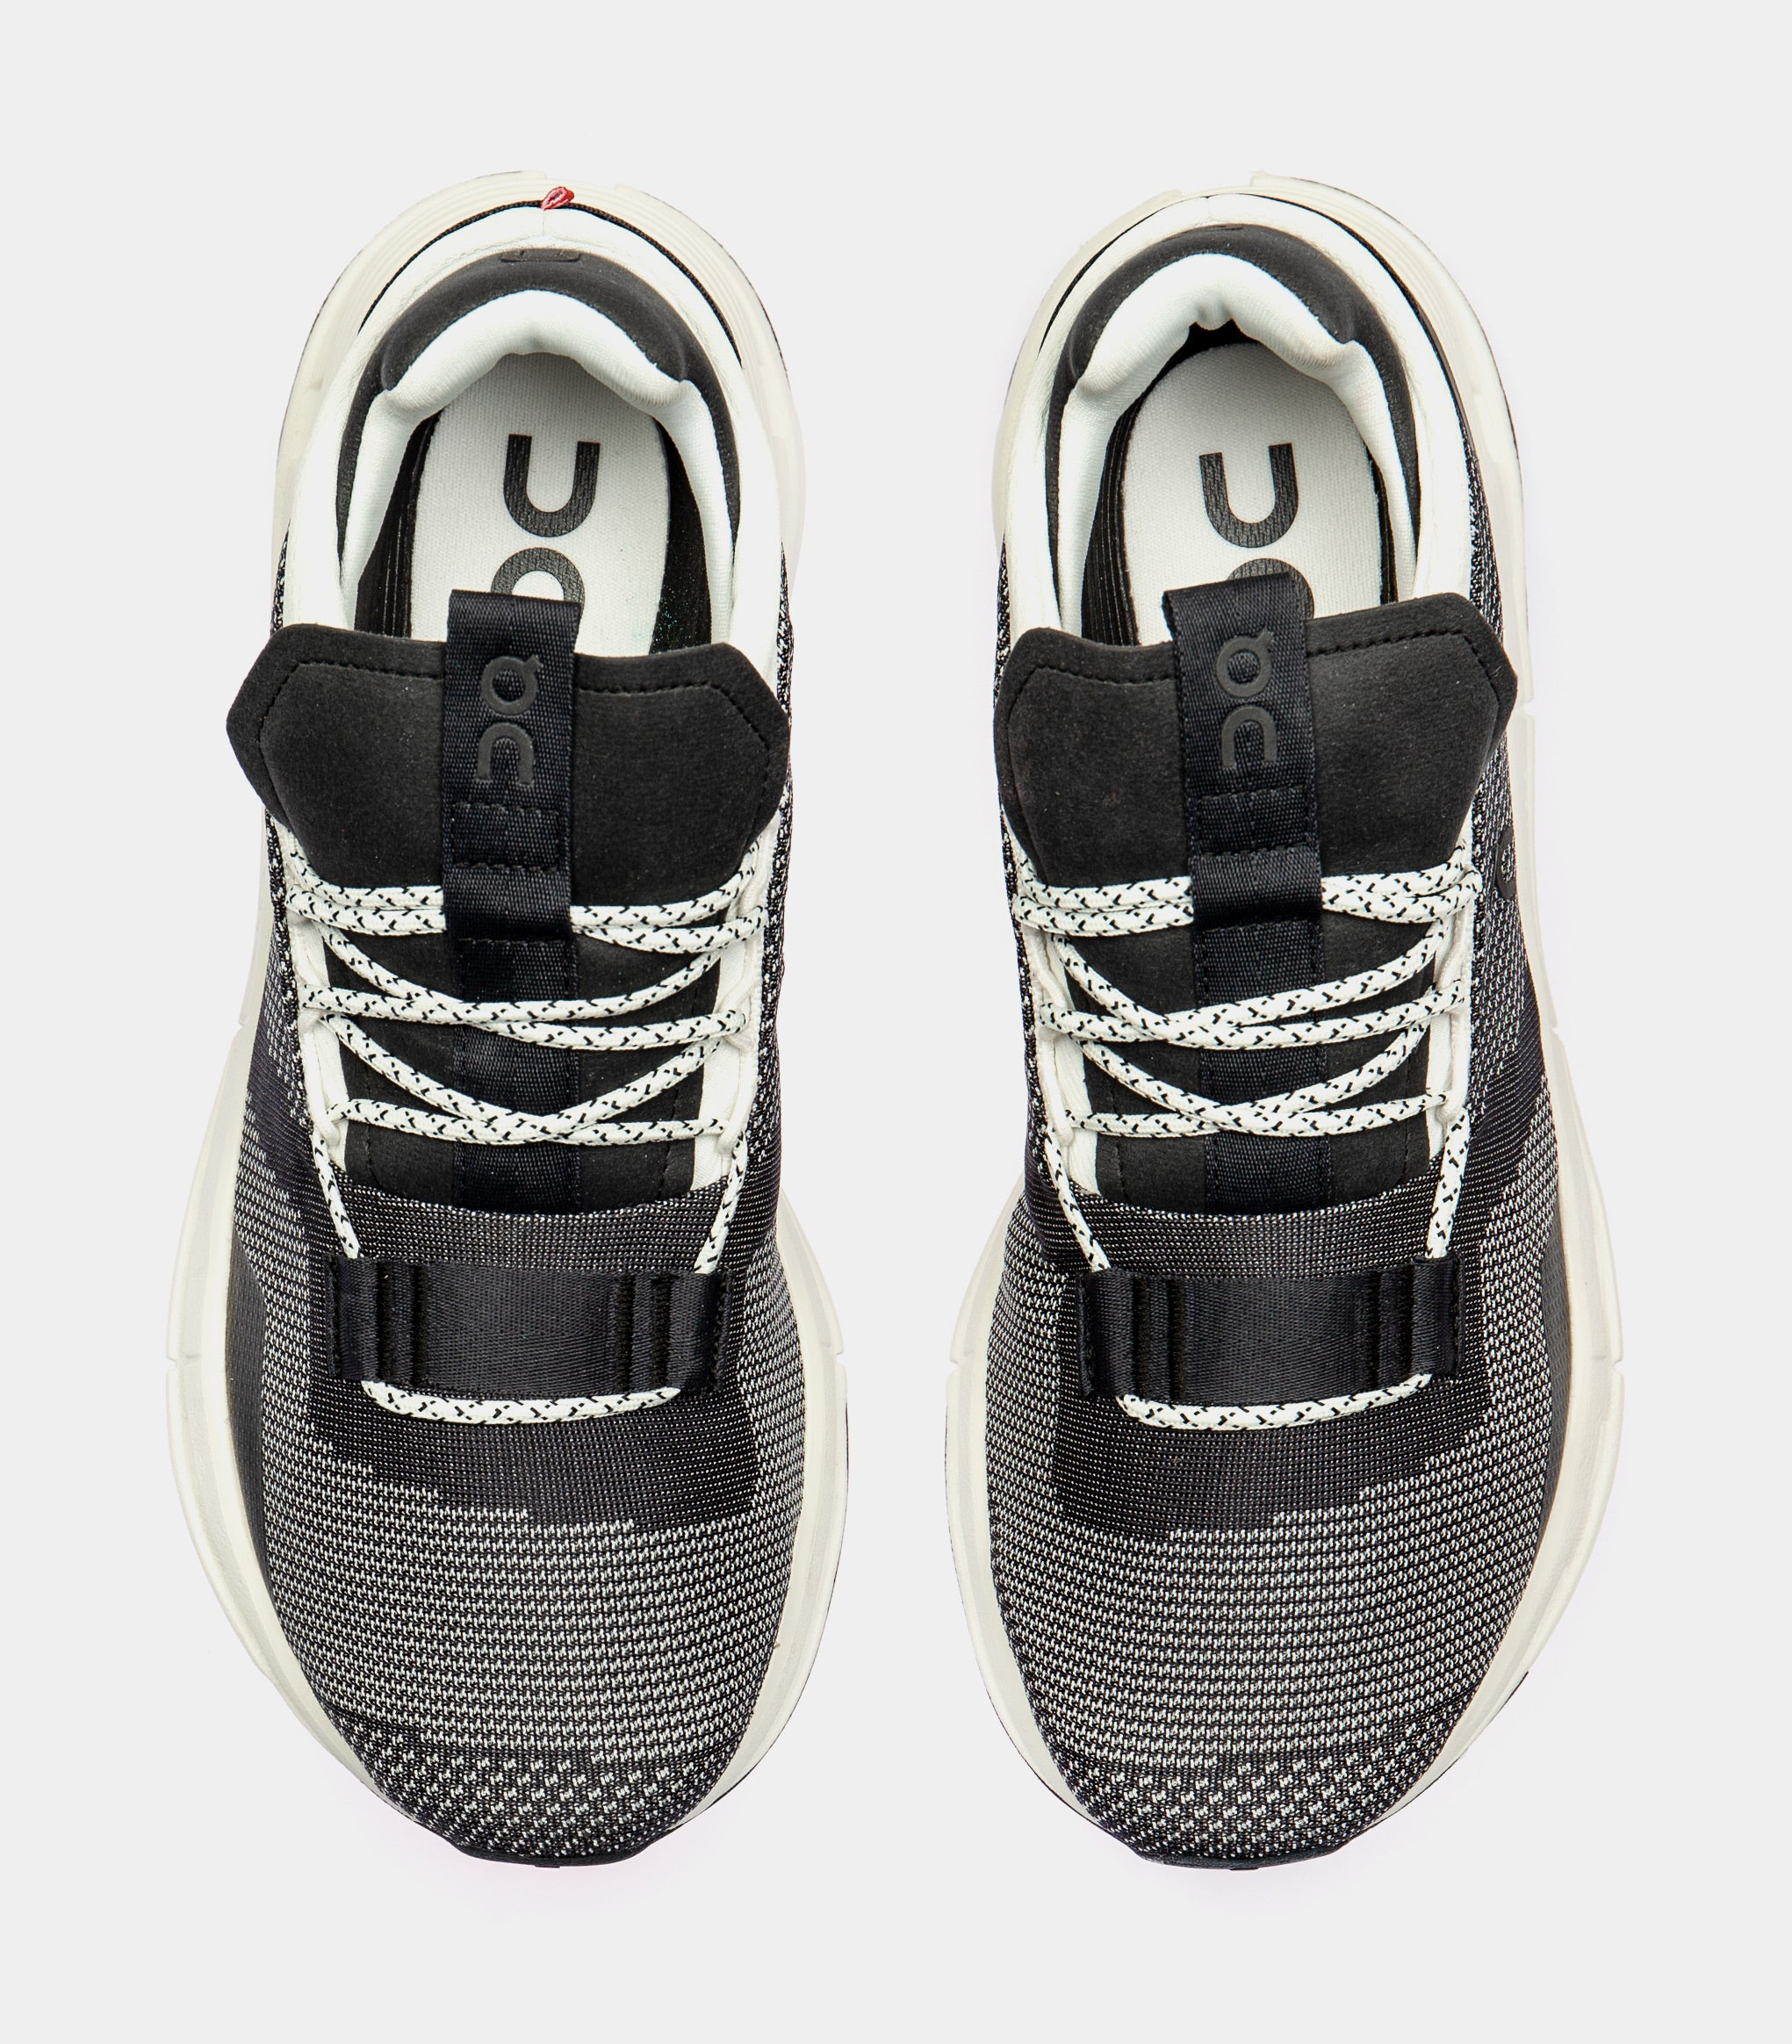 Cloudnova Mens Running Shoe (Black/White) Free Shipping